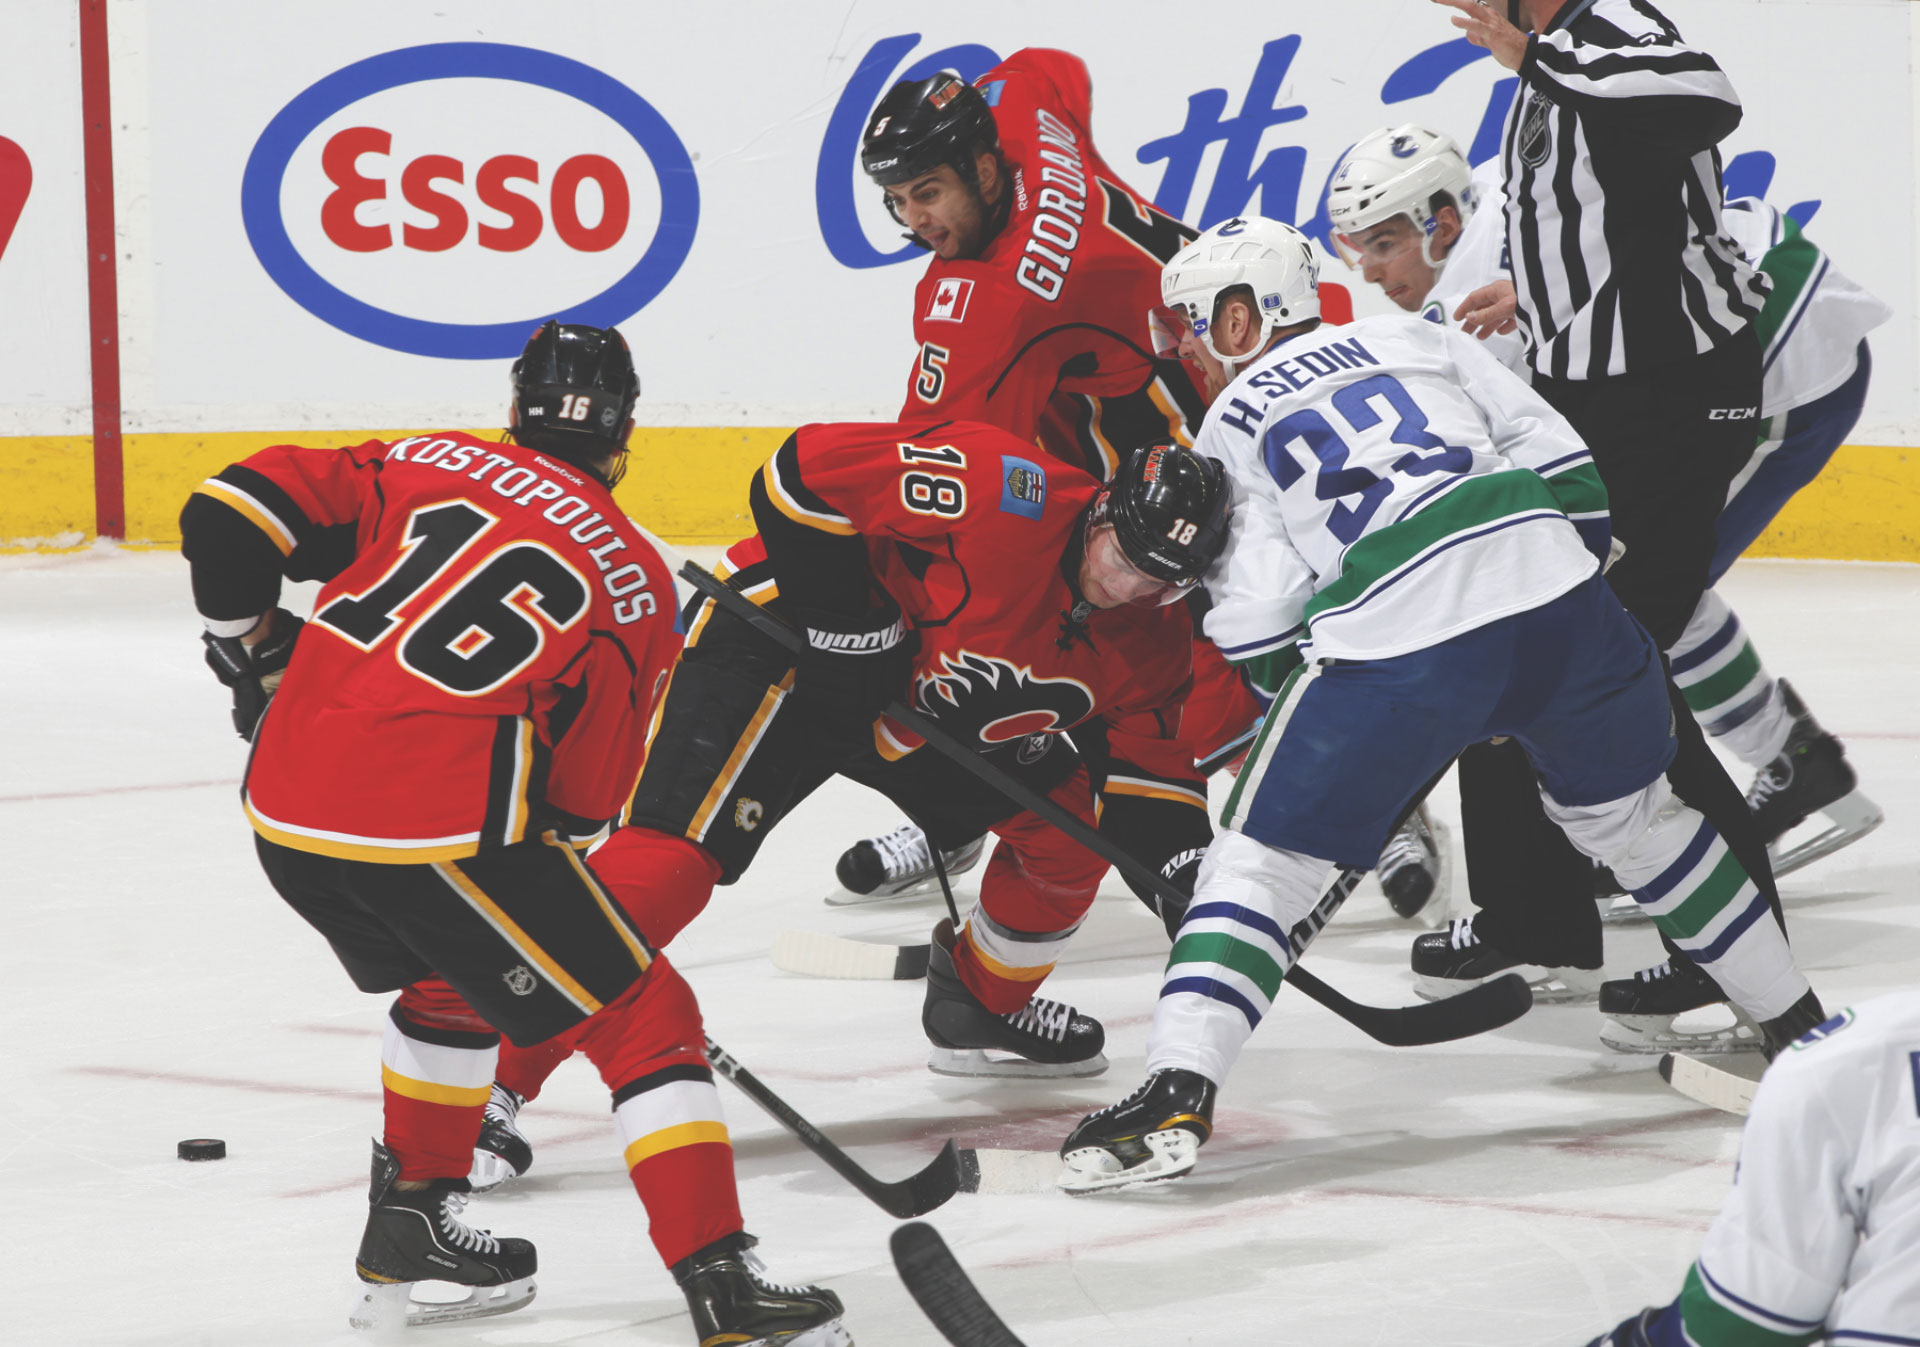 NHL Calgary Flames action